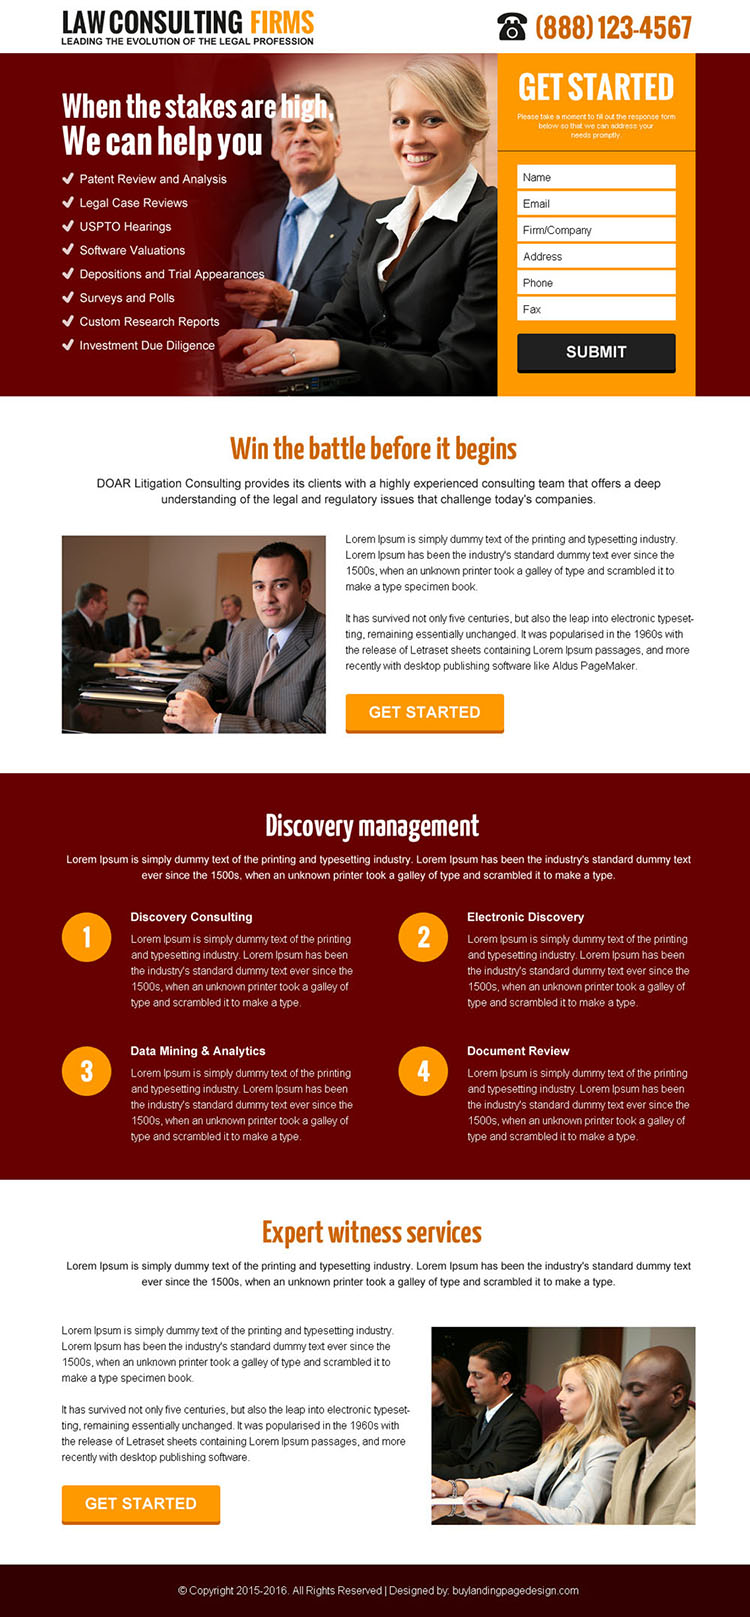 law consulting firms lead capture landing page design